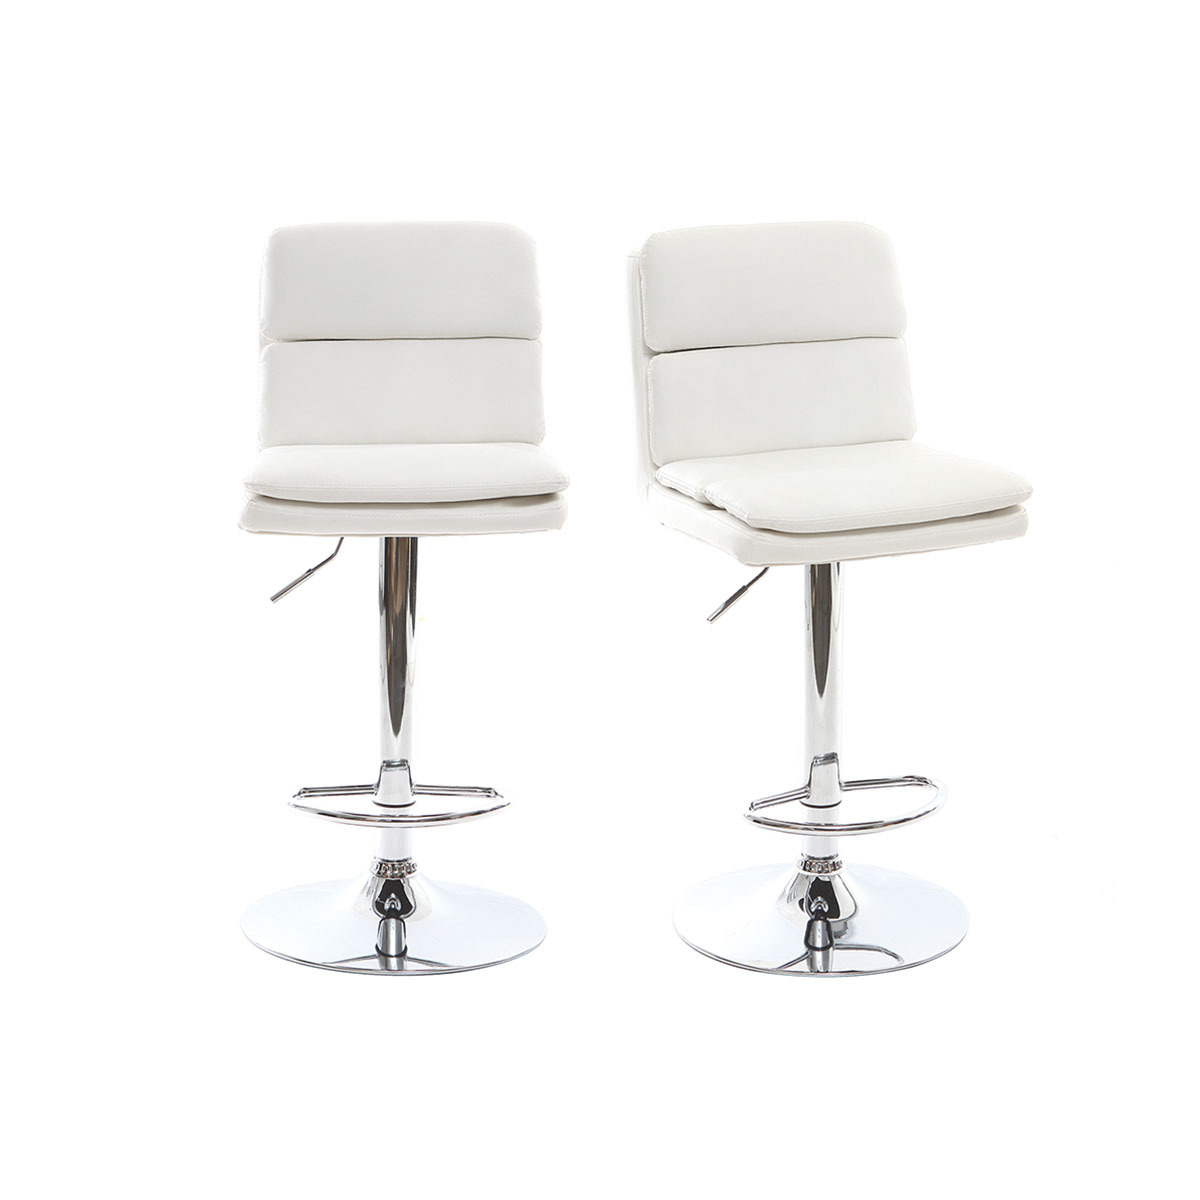 Charly Lot De 2 Tabourets De Bar Noirs Tabouret De Bar Design Simili